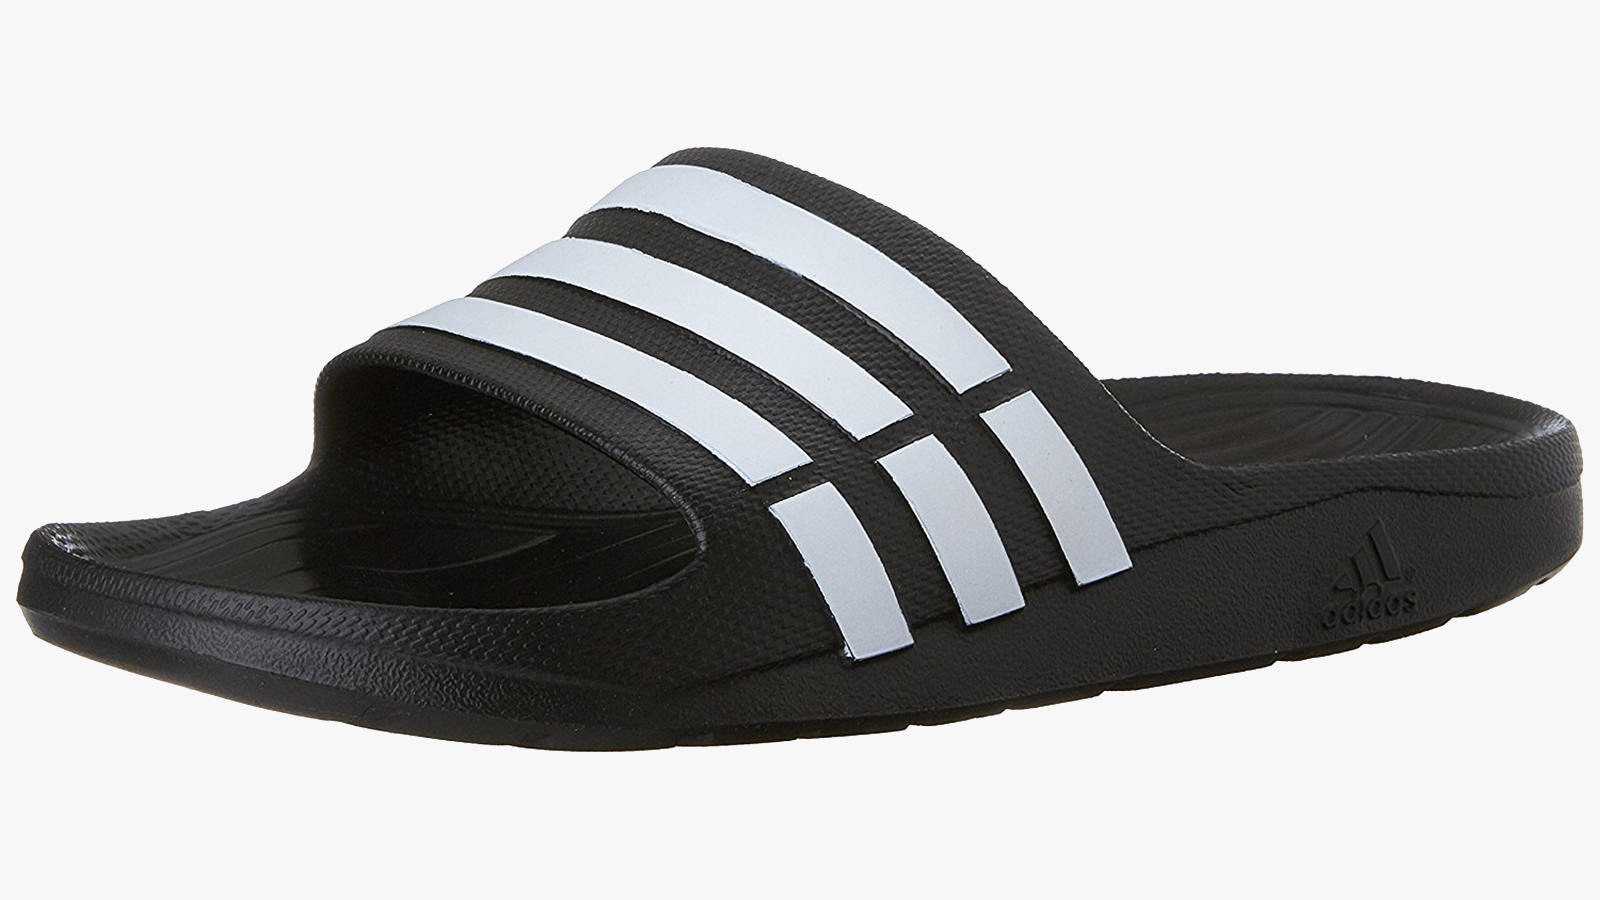 Adidas Duramo Men's Slides